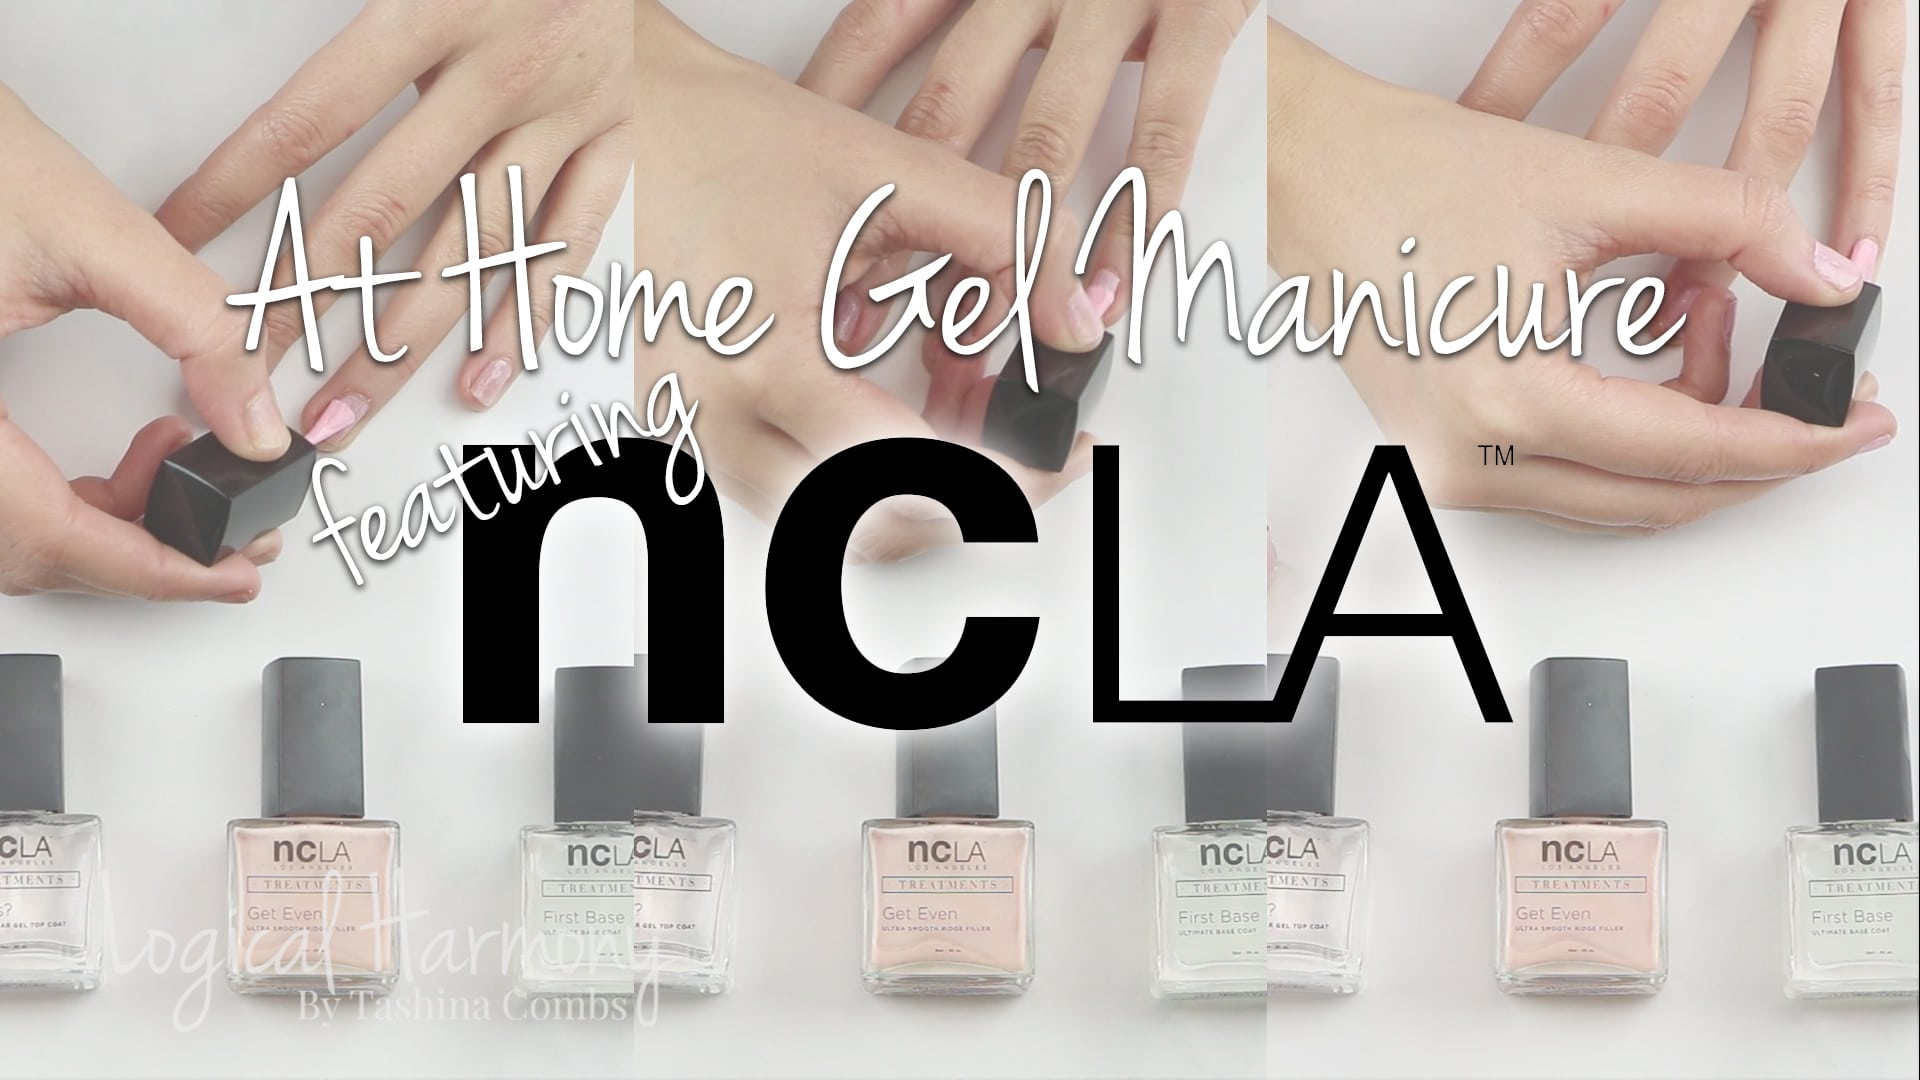 At Home Gel Manicure with NCLA